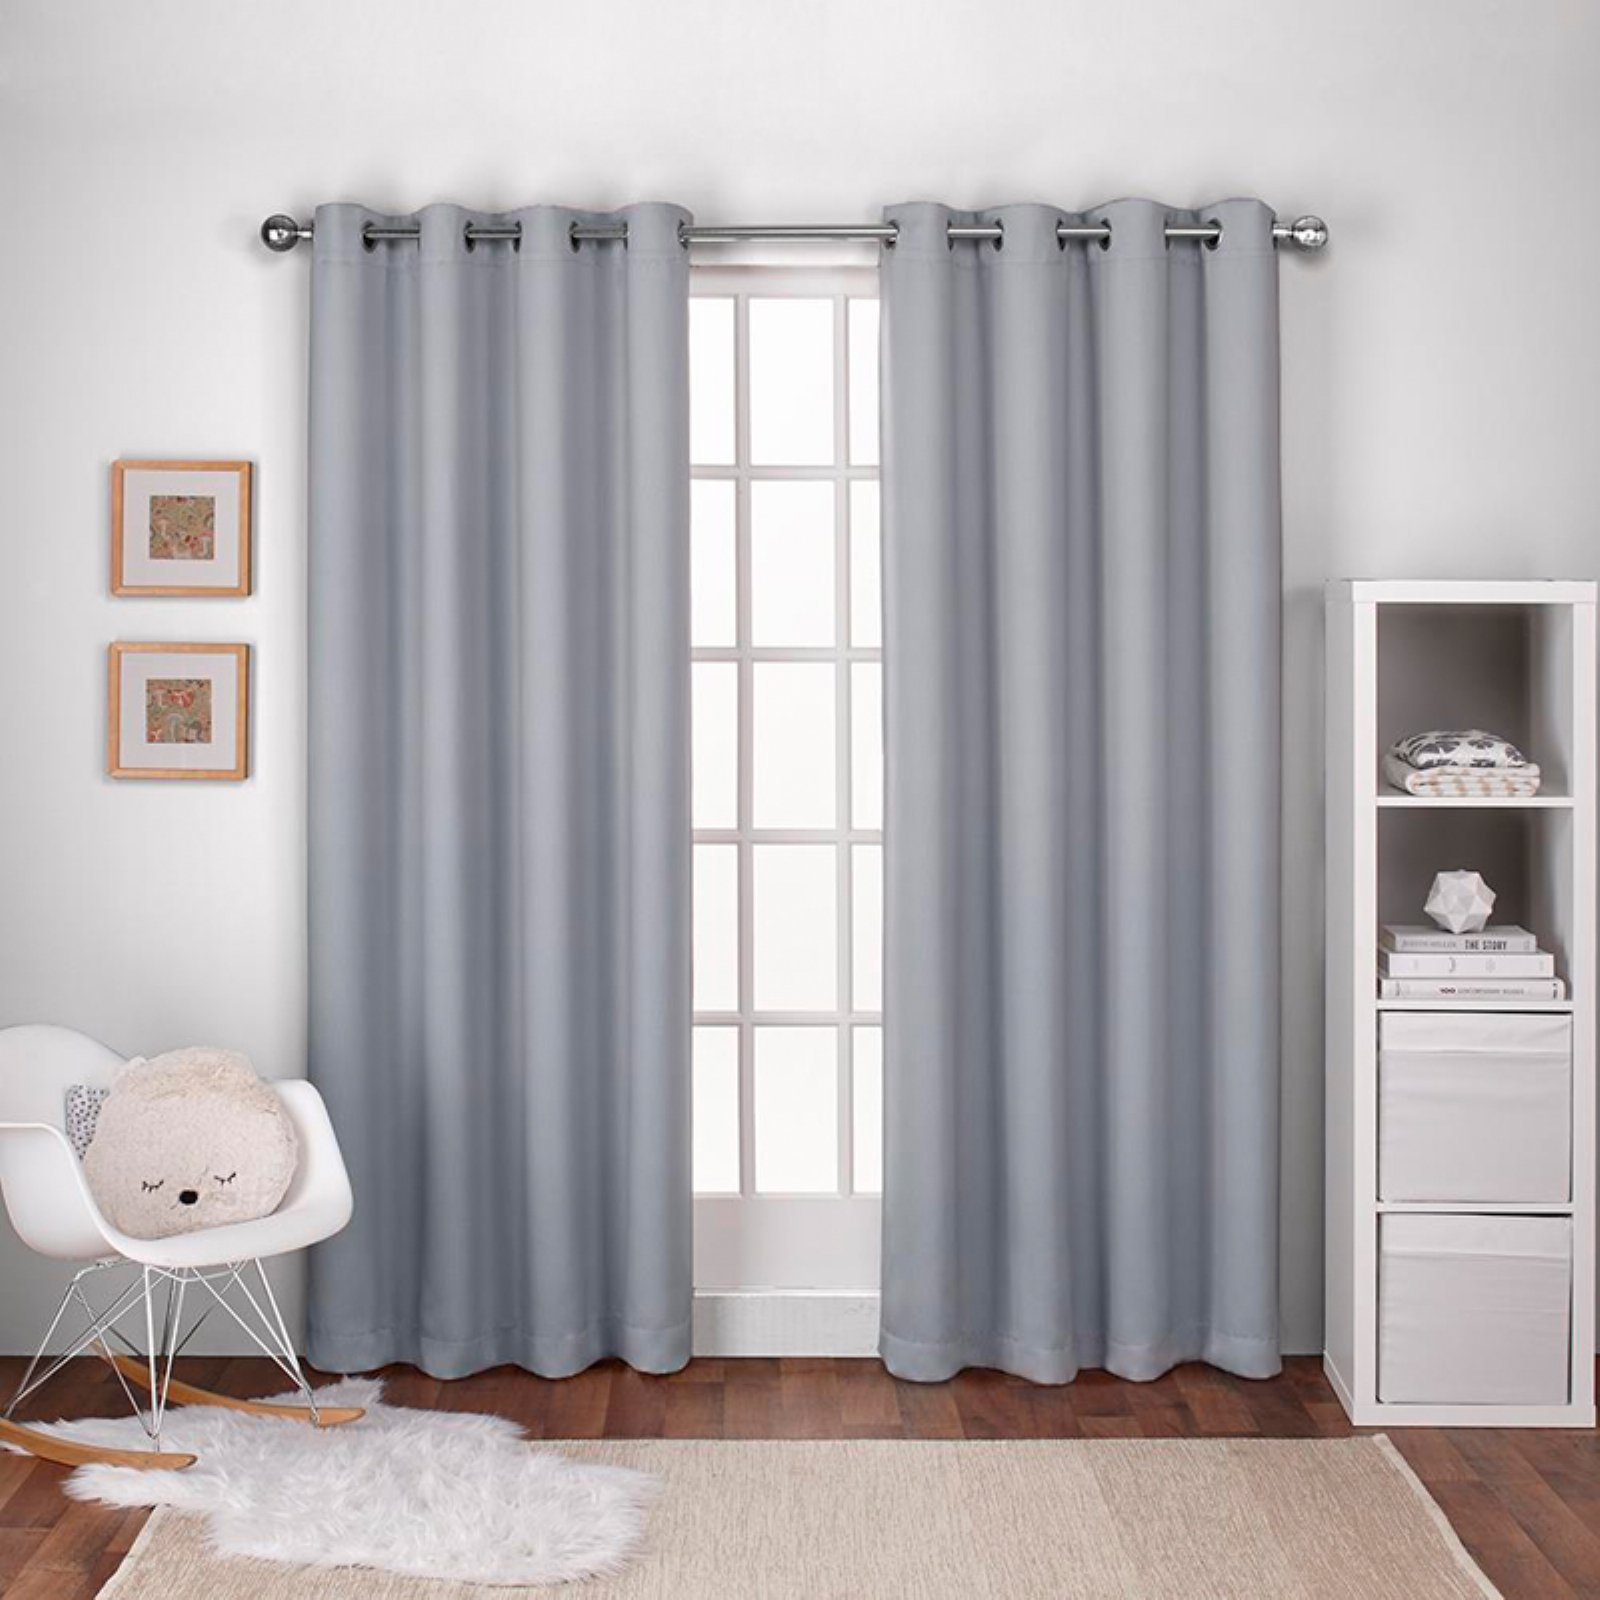 Exclusive Home Textured Woven Blackout Window Curtain Panel Pair With Grommet Top With Woven Blackout Curtain Panel Pairs With Grommet Top (View 4 of 30)